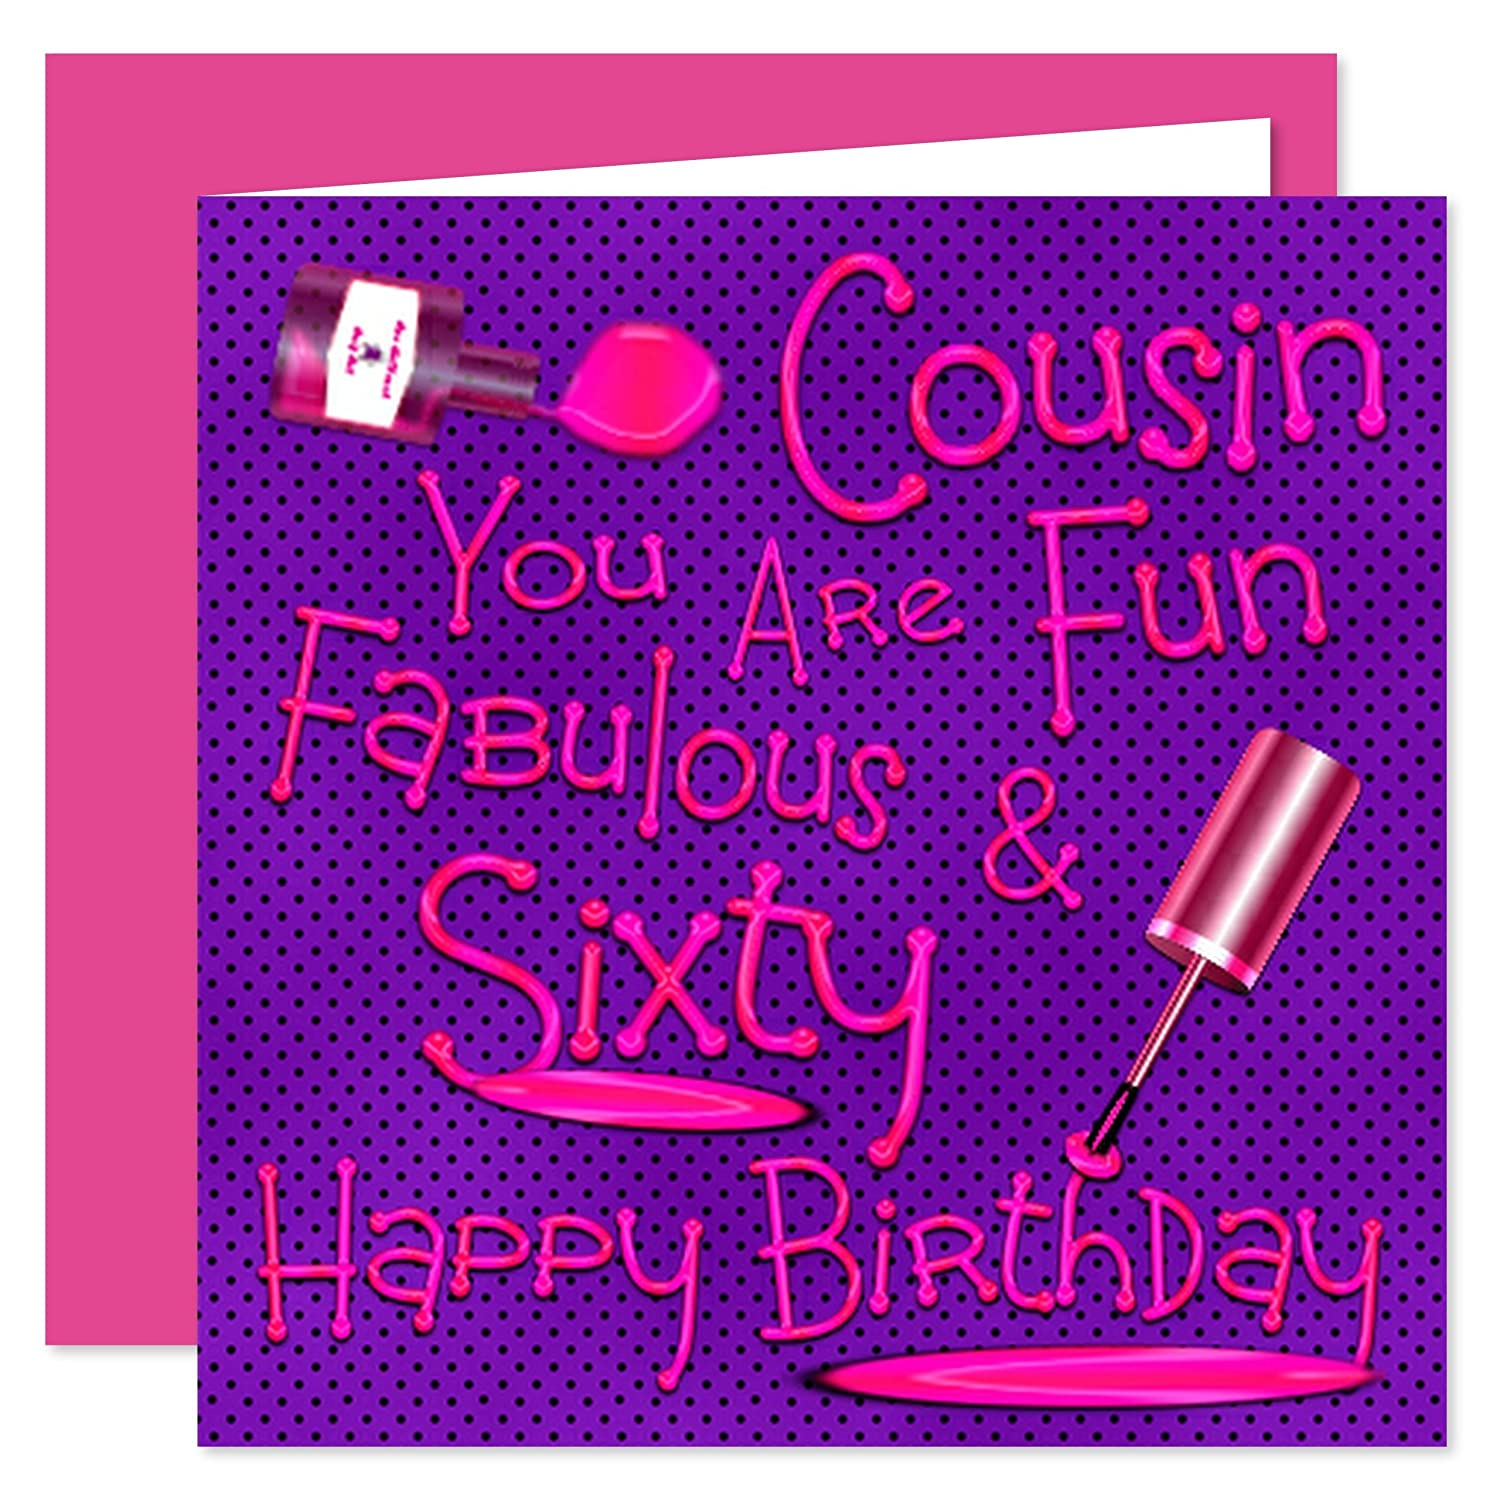 Cousin 60th Happy Birthday Card